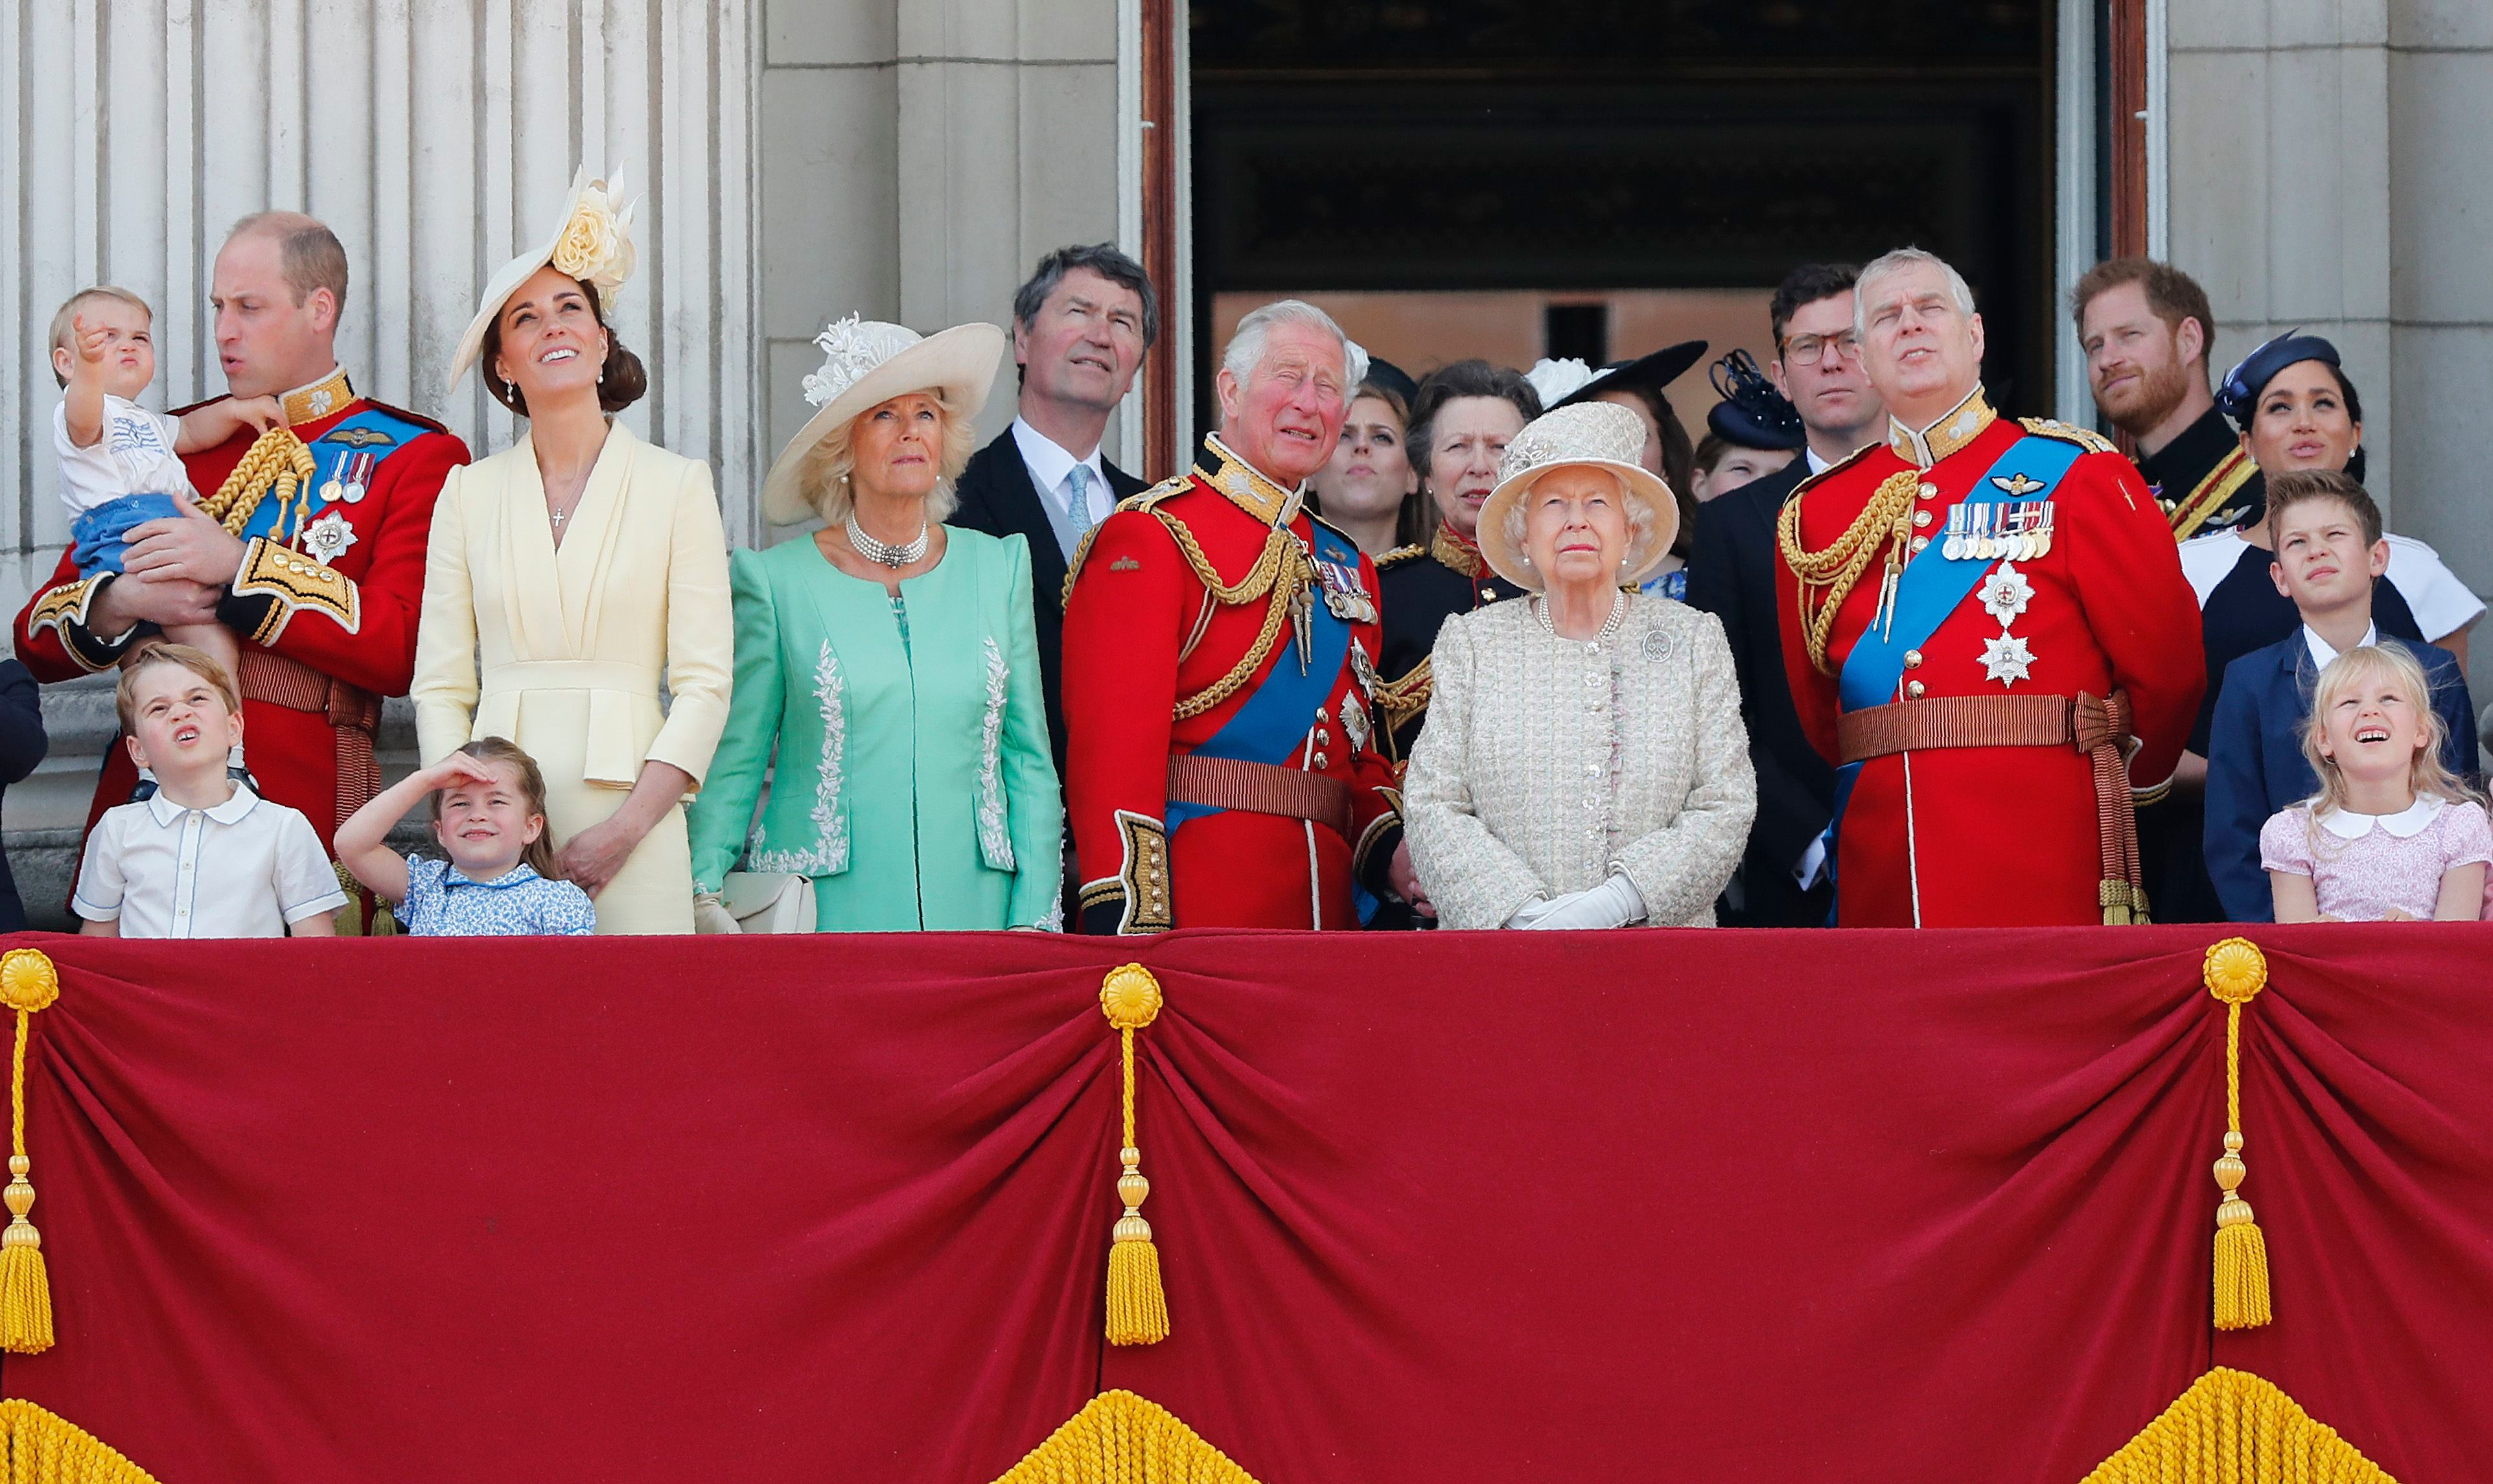 Britain's Queen Elizabeth, center, and members of the royal family attend the annual Trooping the Colour Ceremony in London